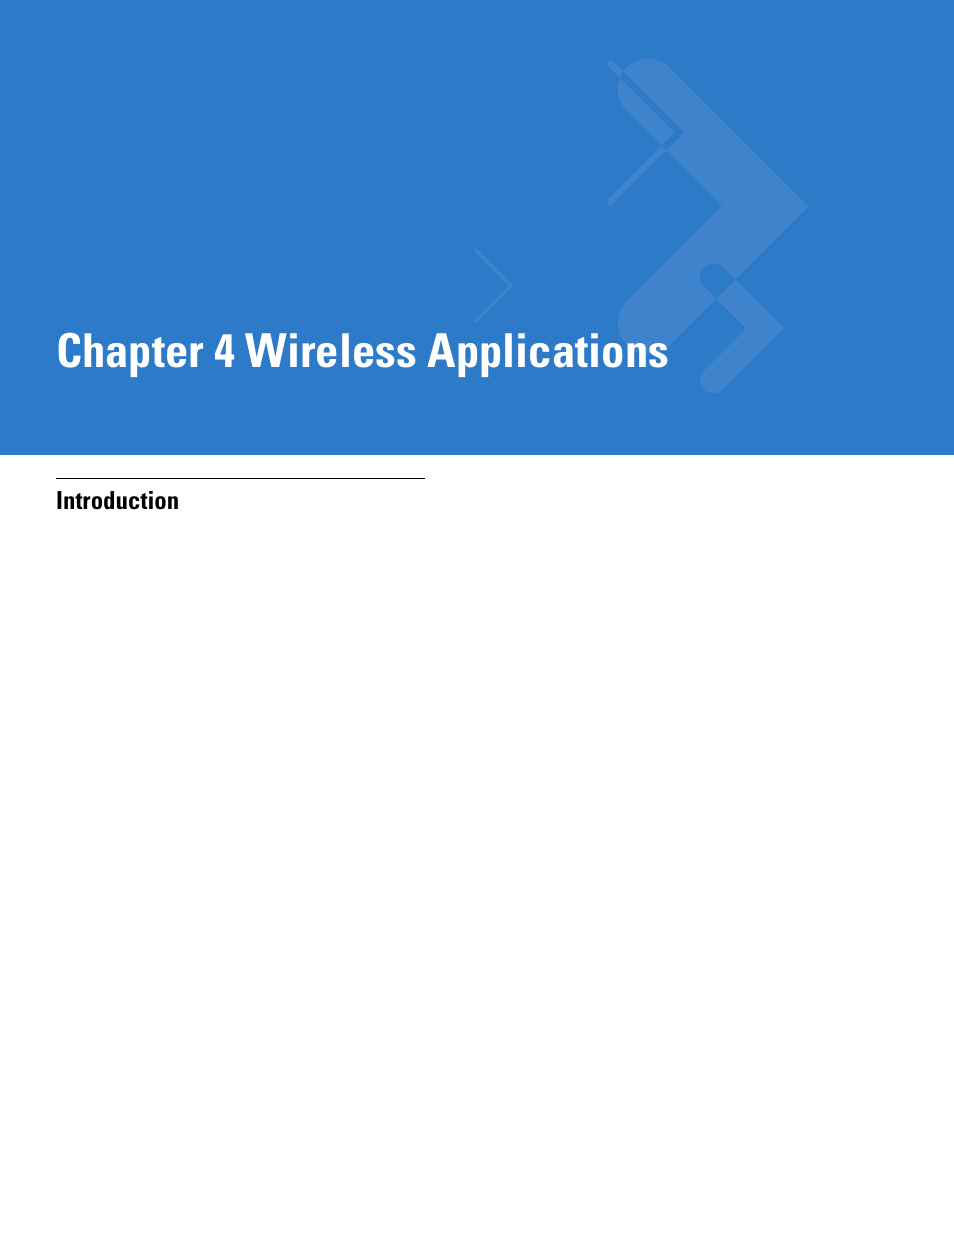 Wireless applications, Introduction, Chapter 4: wireless